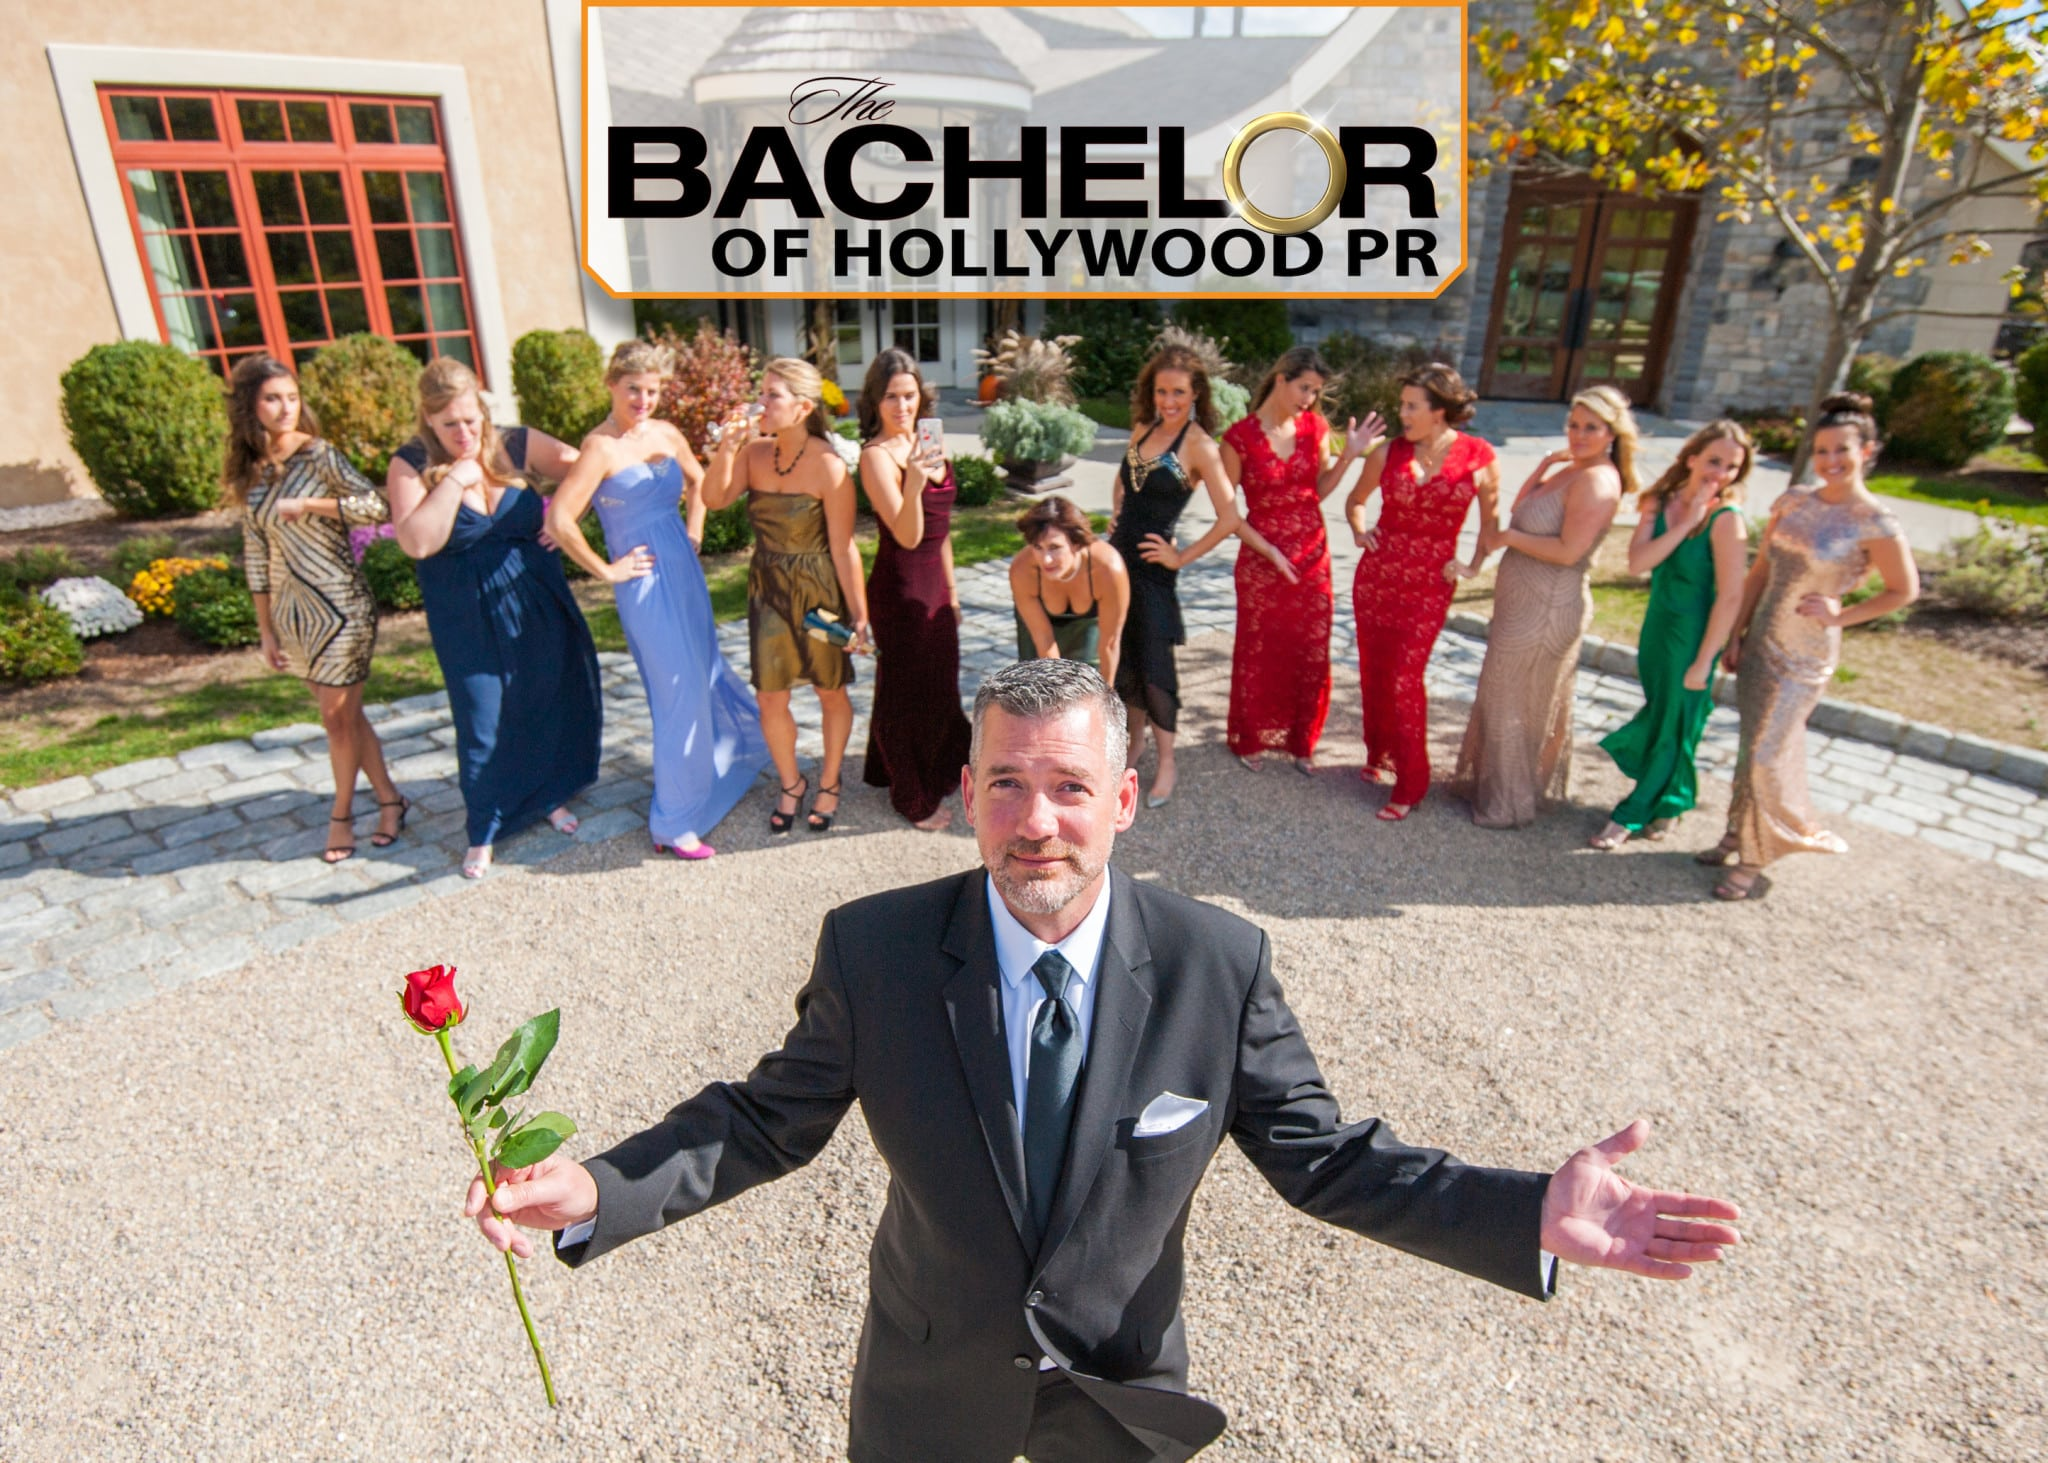 The Bachelor of Hollywood PR